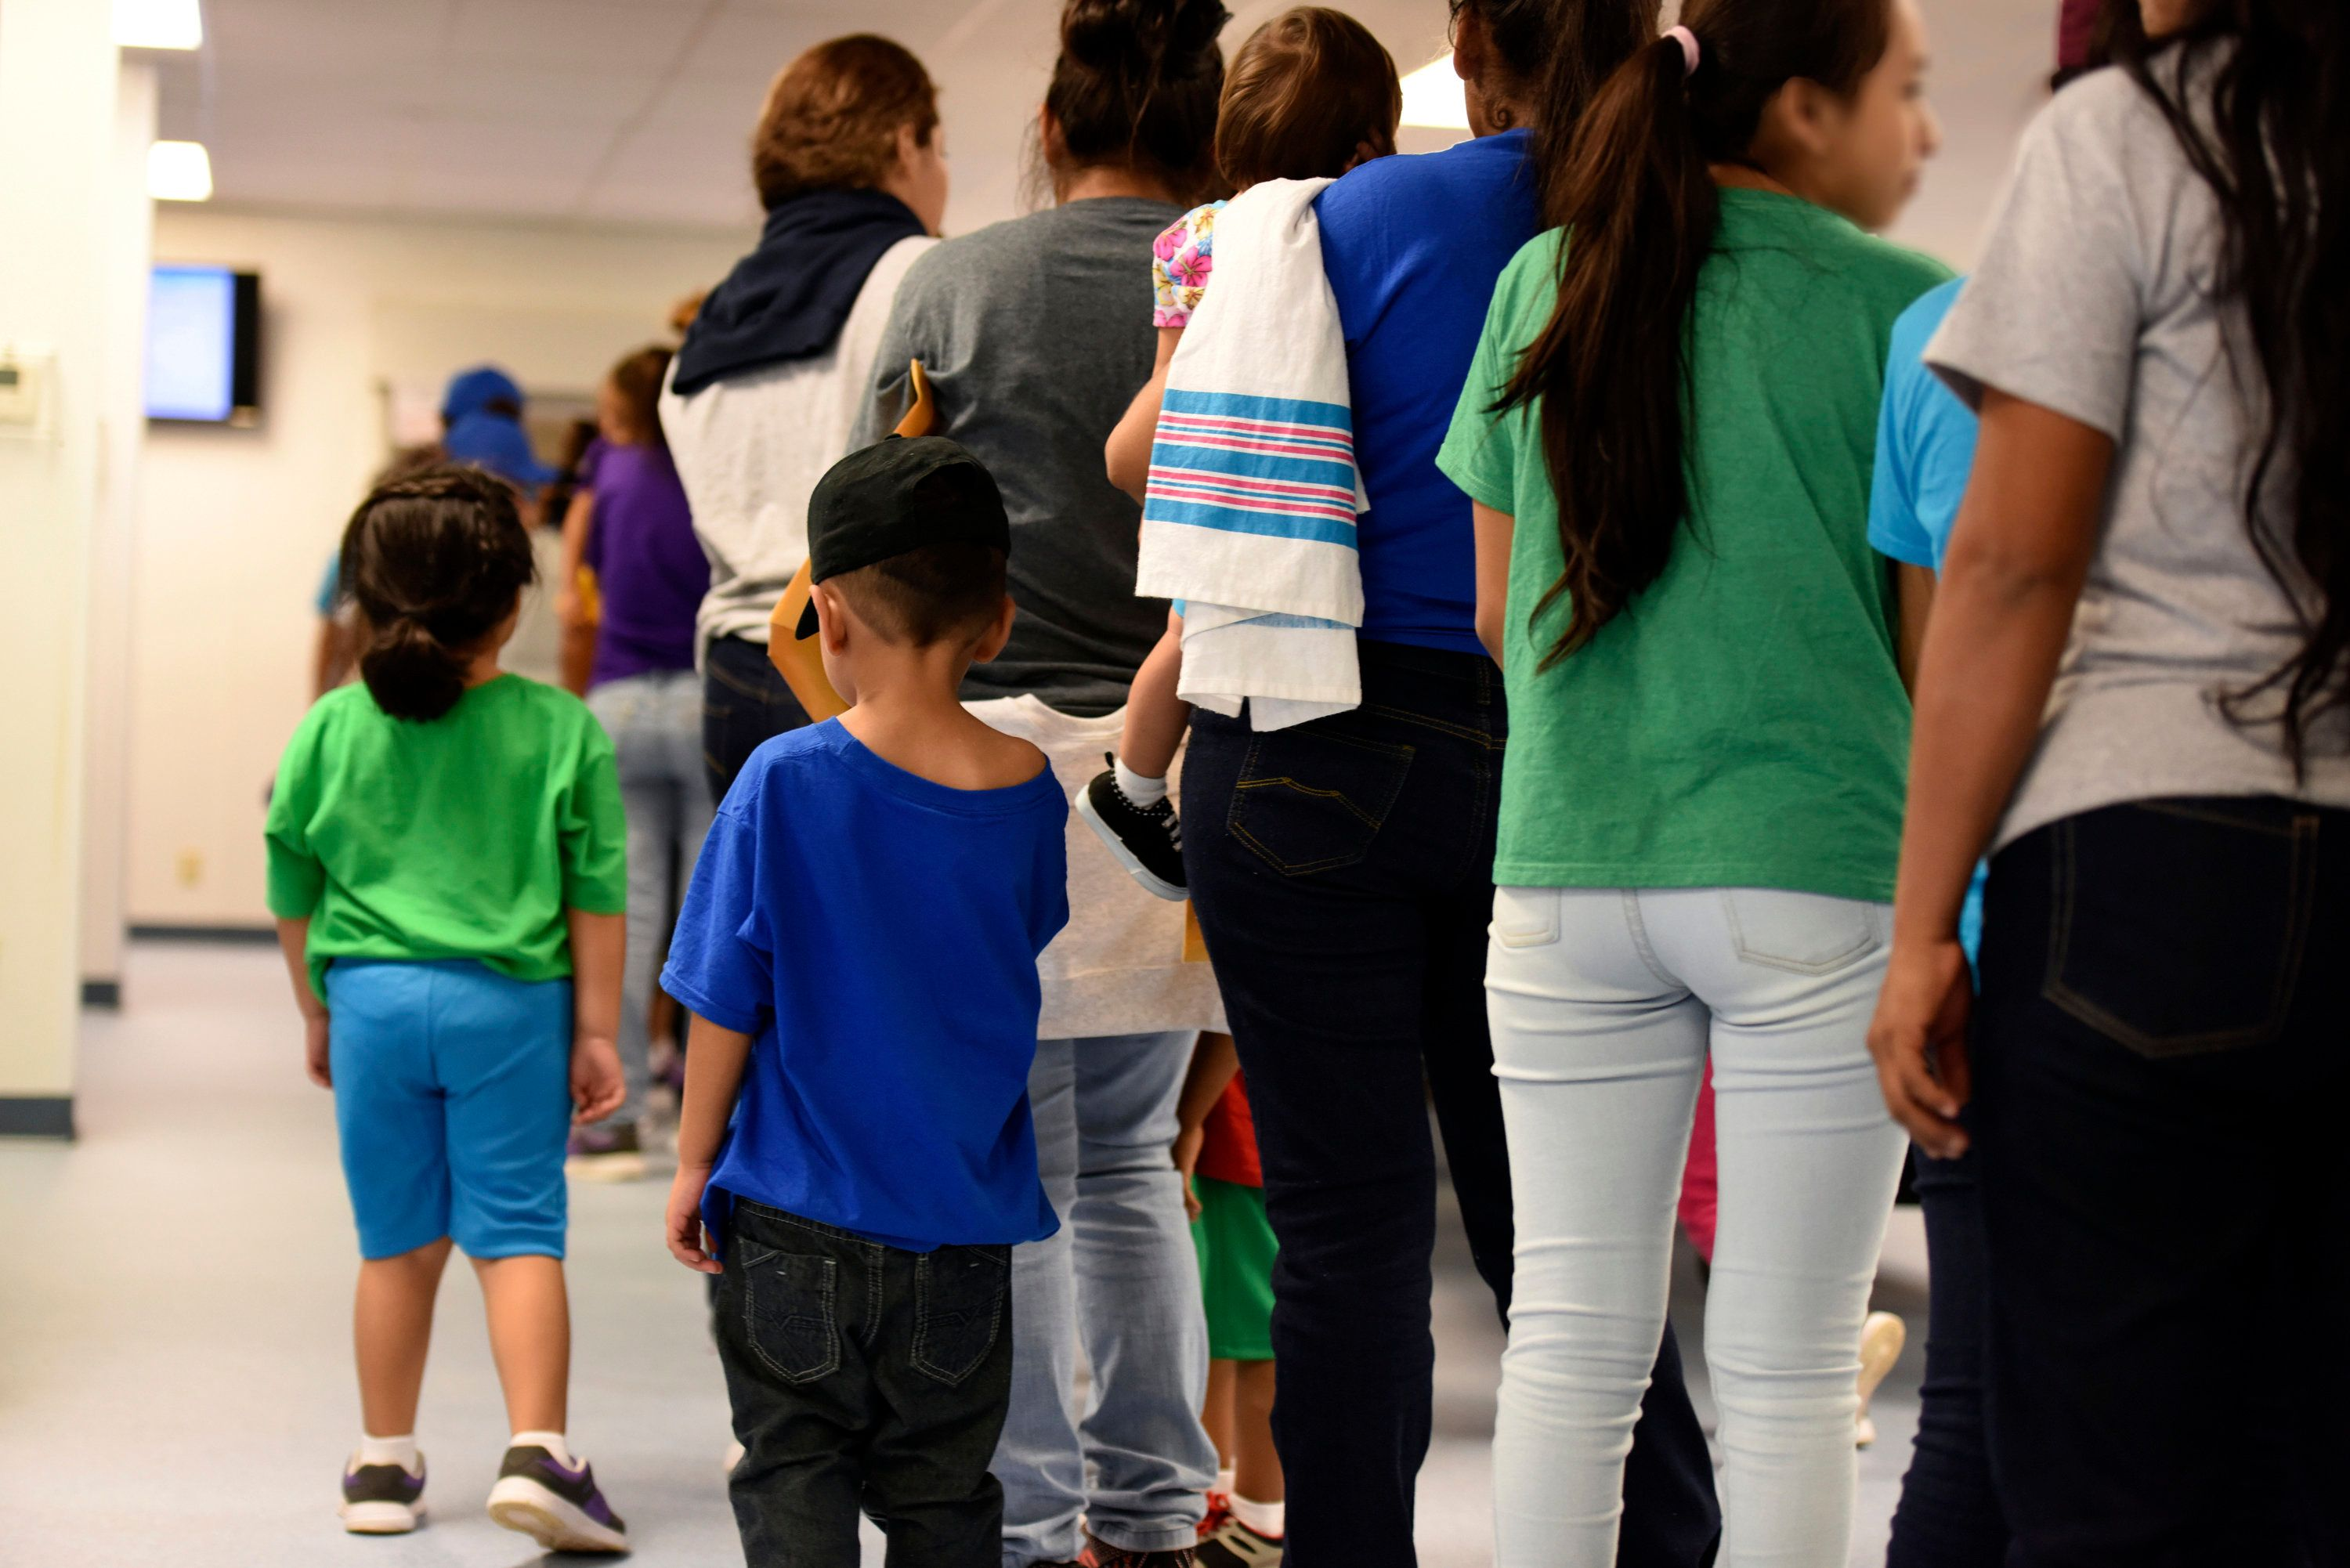 FILE - In this Thursday, Aug. 9, 2018 photo provided by U.S. Immigration and Customs Enforcement, mothers and their children stand in line at South Texas Family Residential Center in Dilley, Texas. Immigrant advocates say they are suing the U.S. government for allegedly detaining immigrant children too long and improperly refusing to release them to relatives. Lawyers said Tuesday, Jan. 22, 2019 they expanded a lawsuit filed last year in federal court in Alexandria, Va., to propose including the cases of more than 10,000 children. (Charles Reed/U.S. Immigration and Customs Enforcement via AP, File)